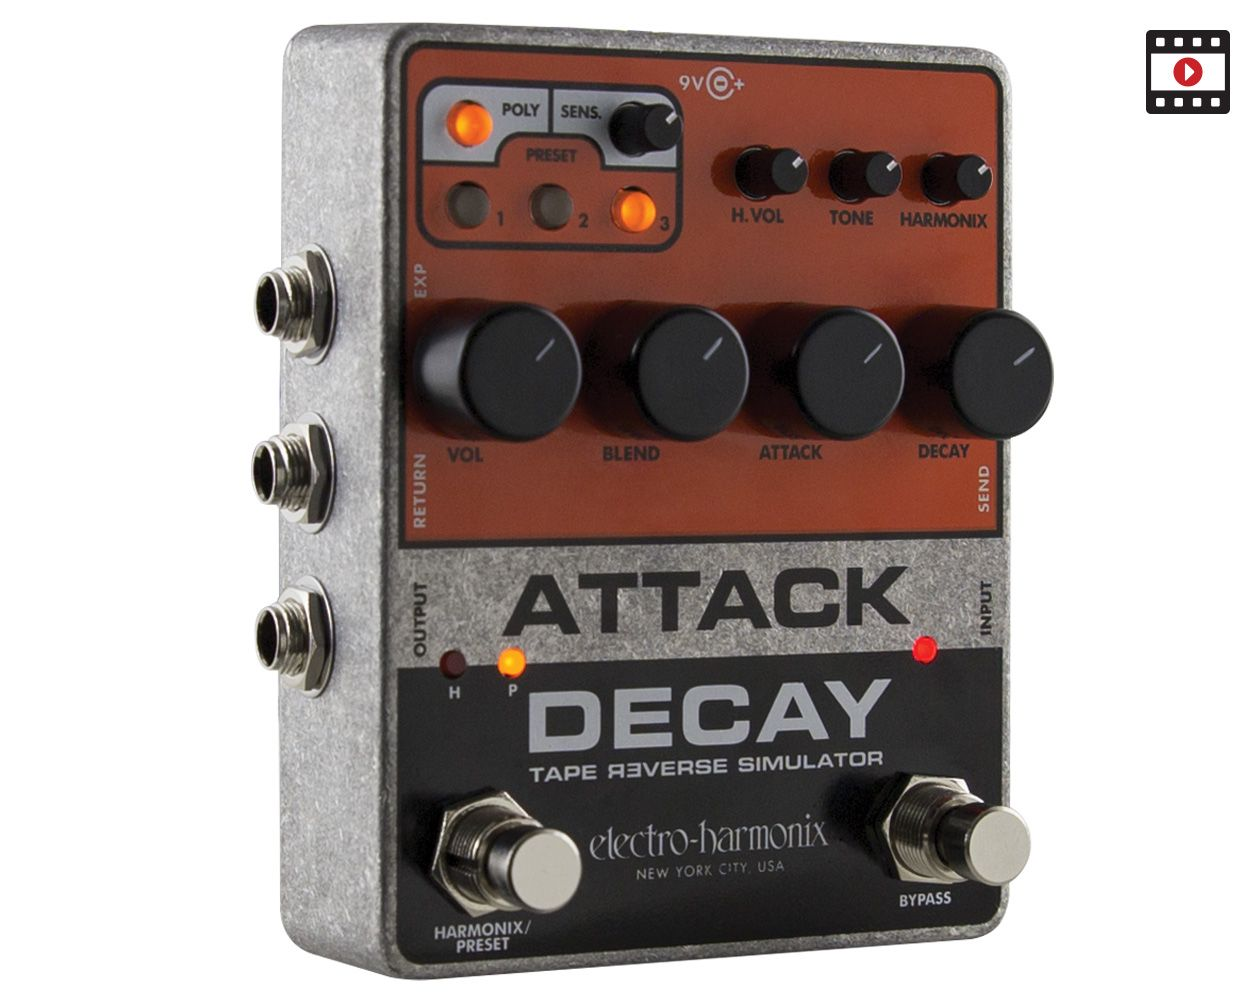 Electro-Harmonix Attack Decay Review